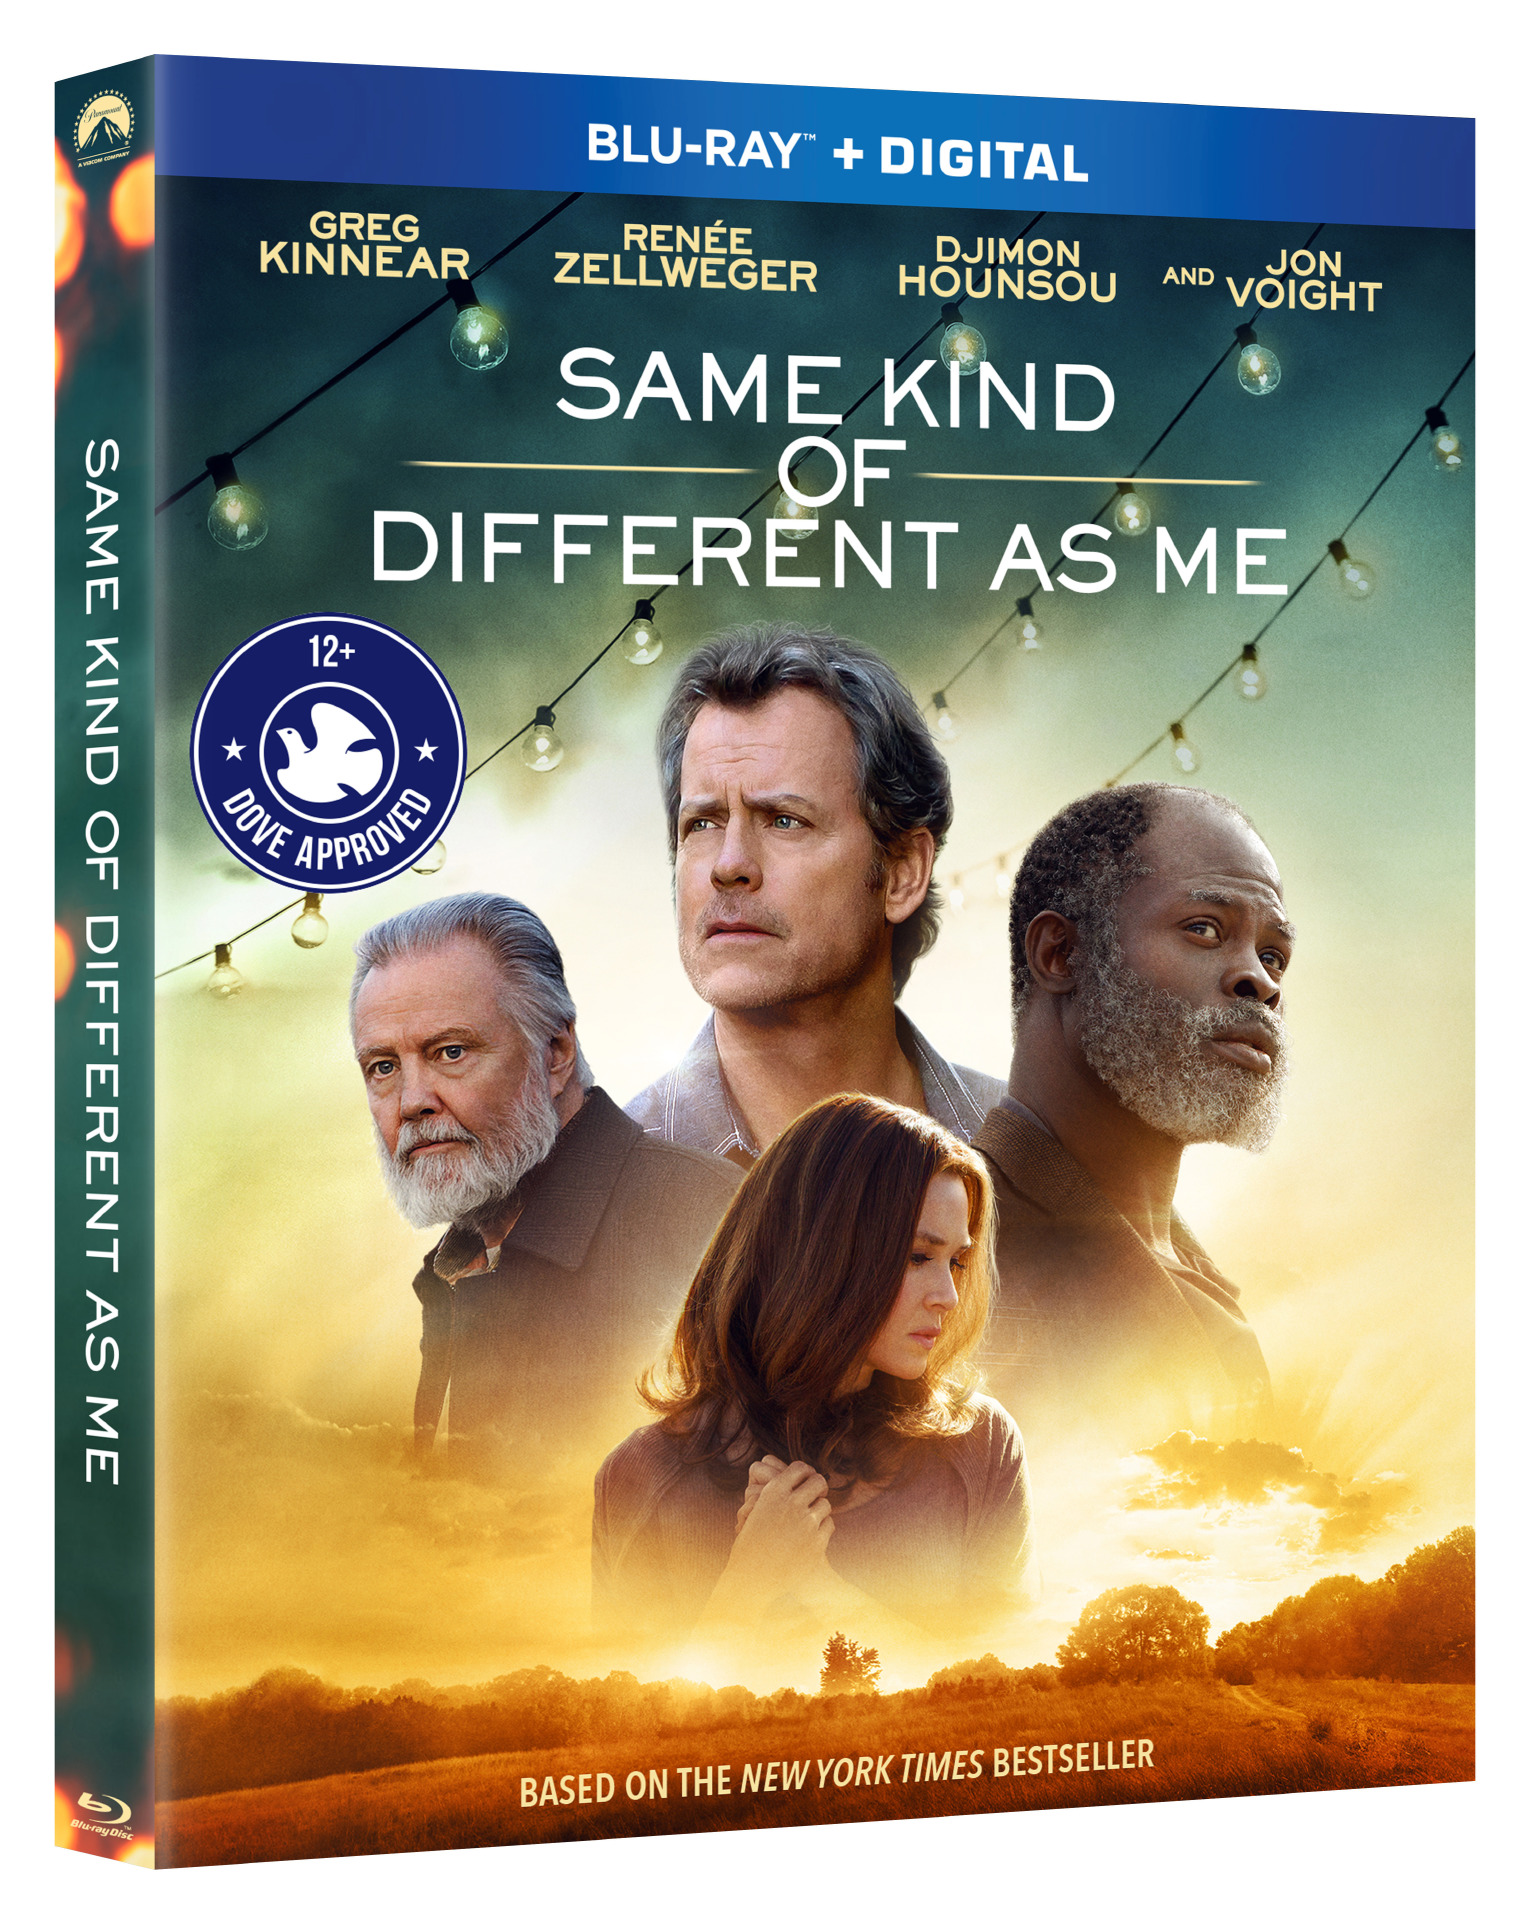 SAME KIND OF DIFFERENT AS ME Arrives on Digital Bluray